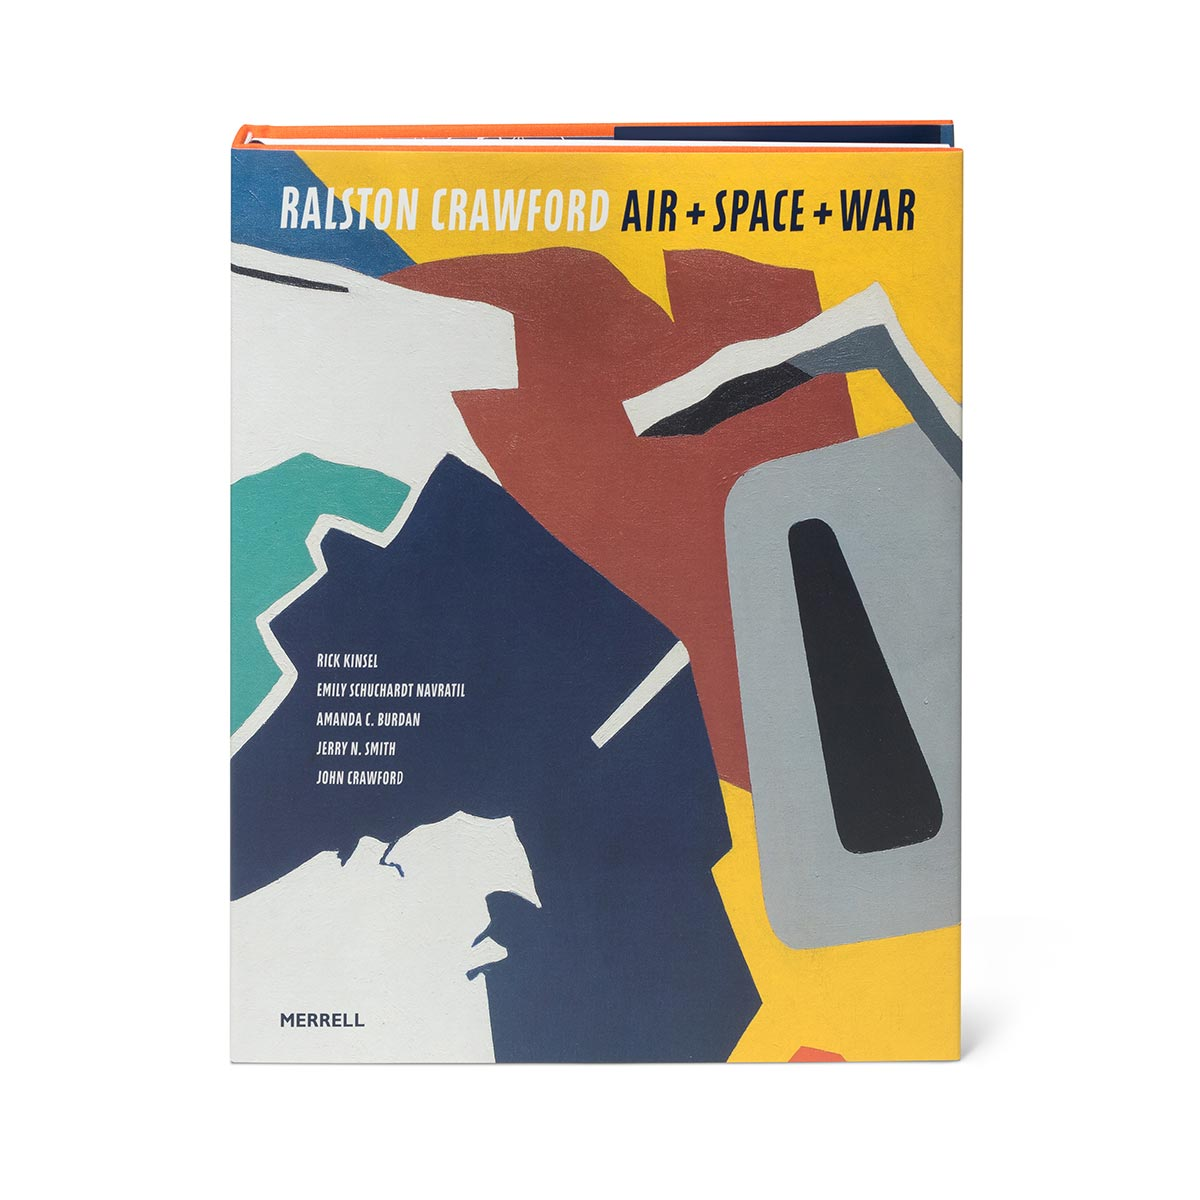 Ralston Crawford: Air + Space + War book cover